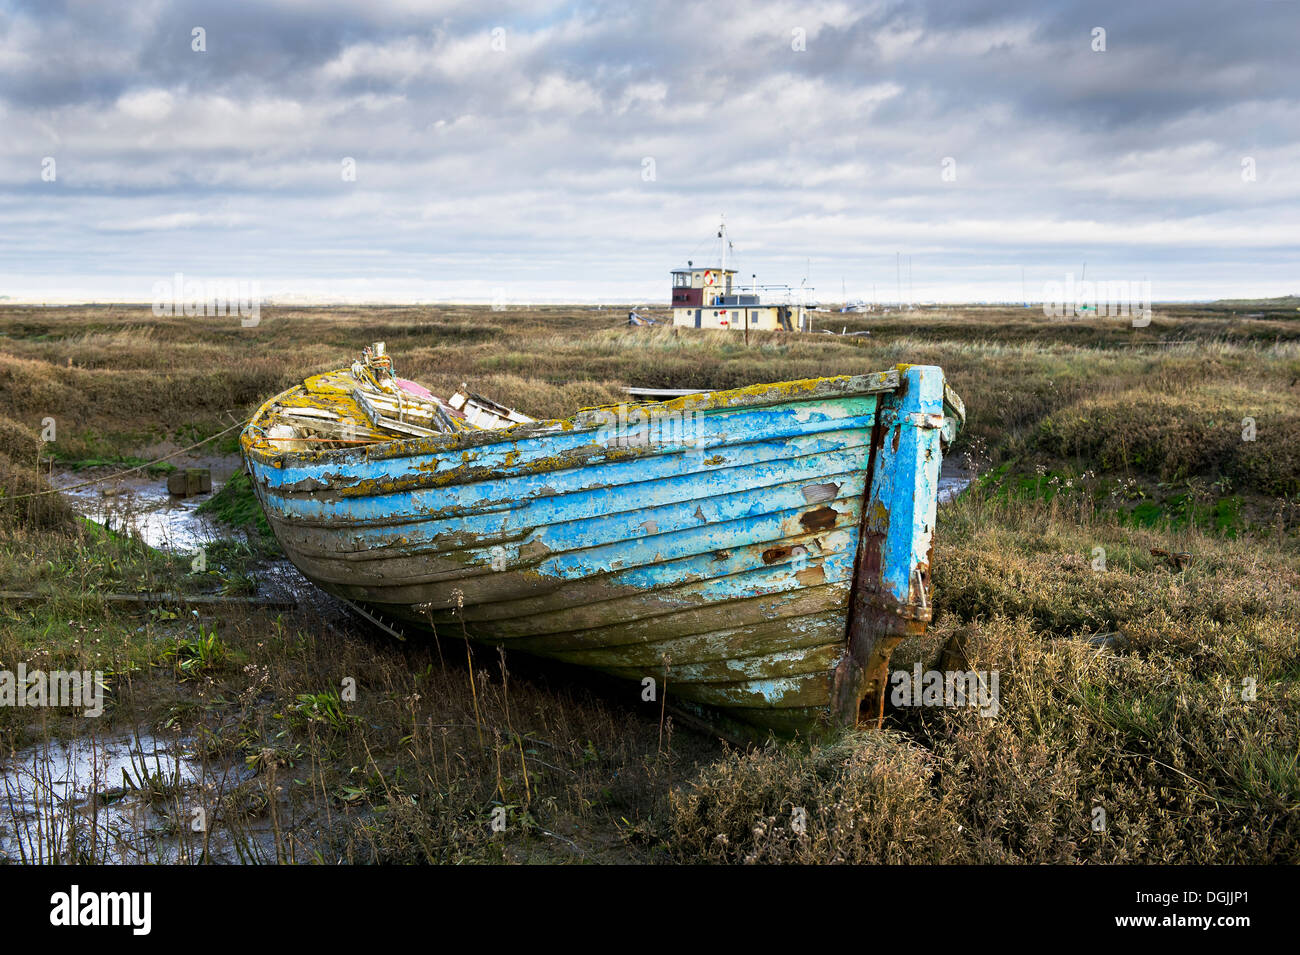 The remains of an old wooden dinghy abandoned in the Tollesbury Saltings. Stock Photo